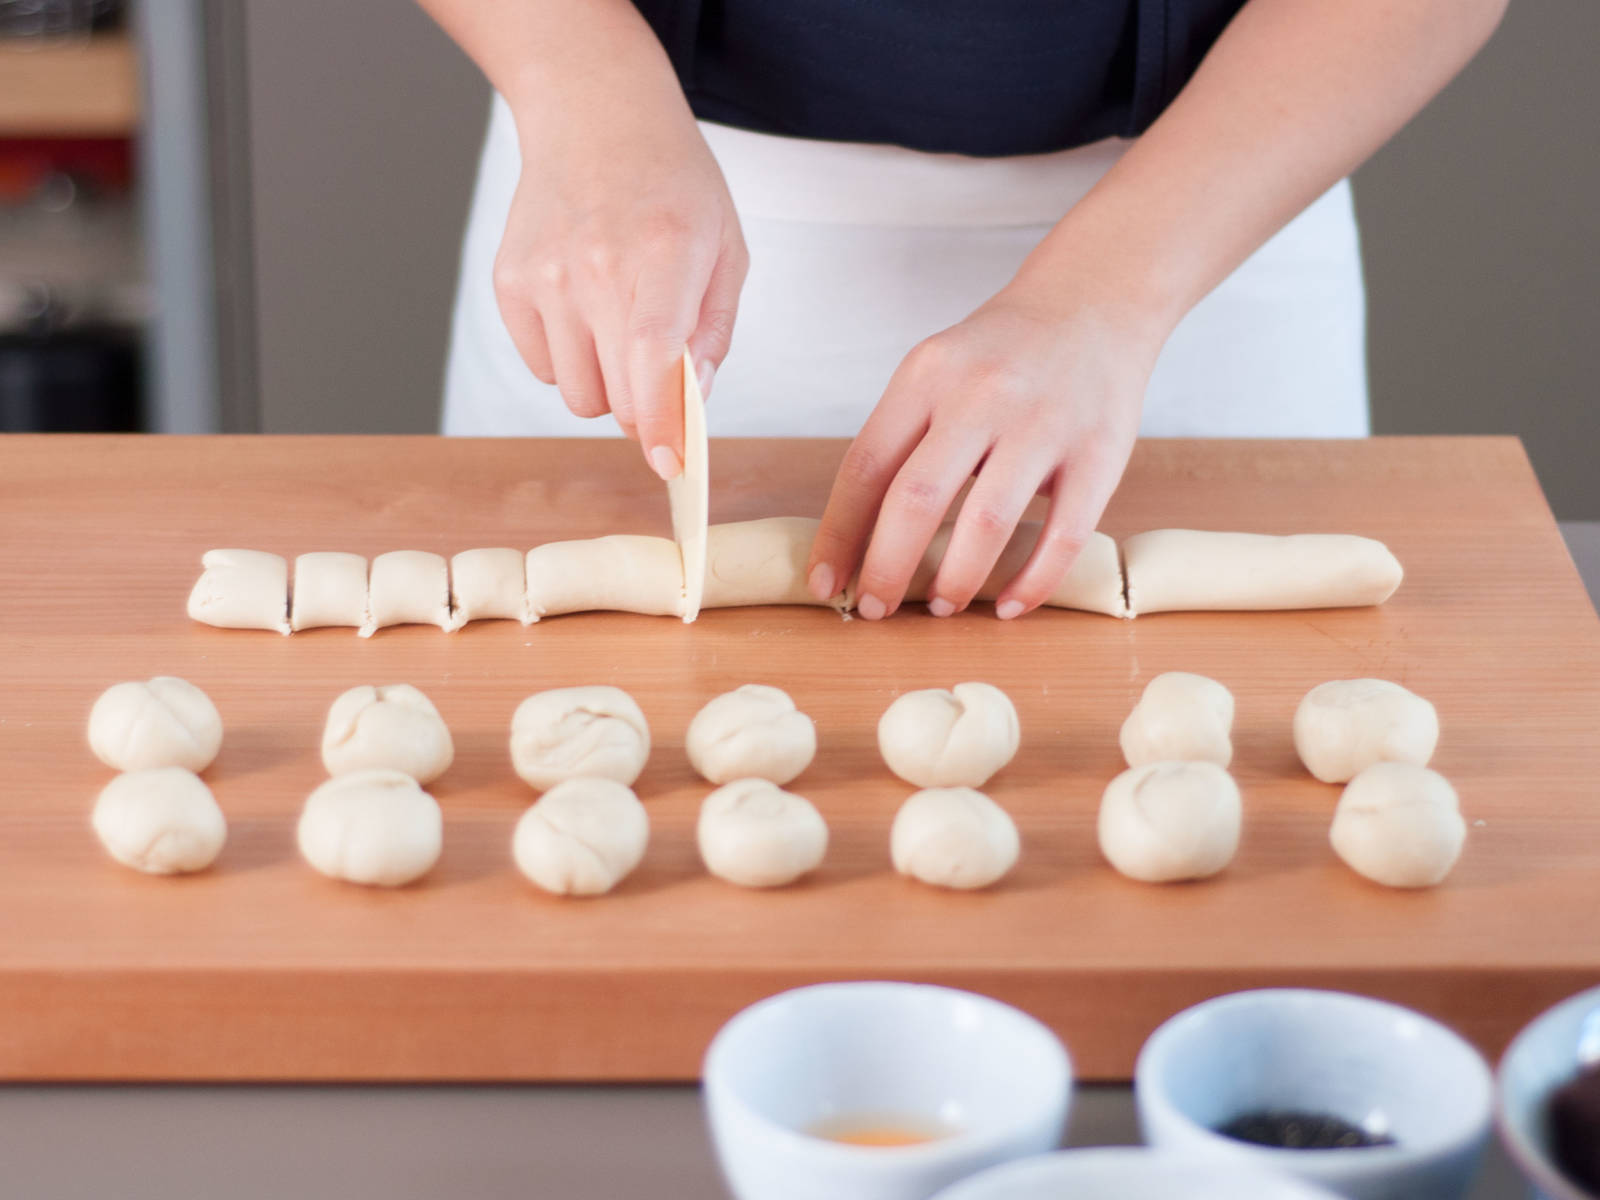 Preheat oven to 180°C/350°F. Roll each dough into a long strip approx. thumb thick. Cut first dough into equal portions approx. finger-width in length. Separate second dough into an equal number of portions. Roll each portion into a ball in the palm of your hand, keeping the two doughs separate.